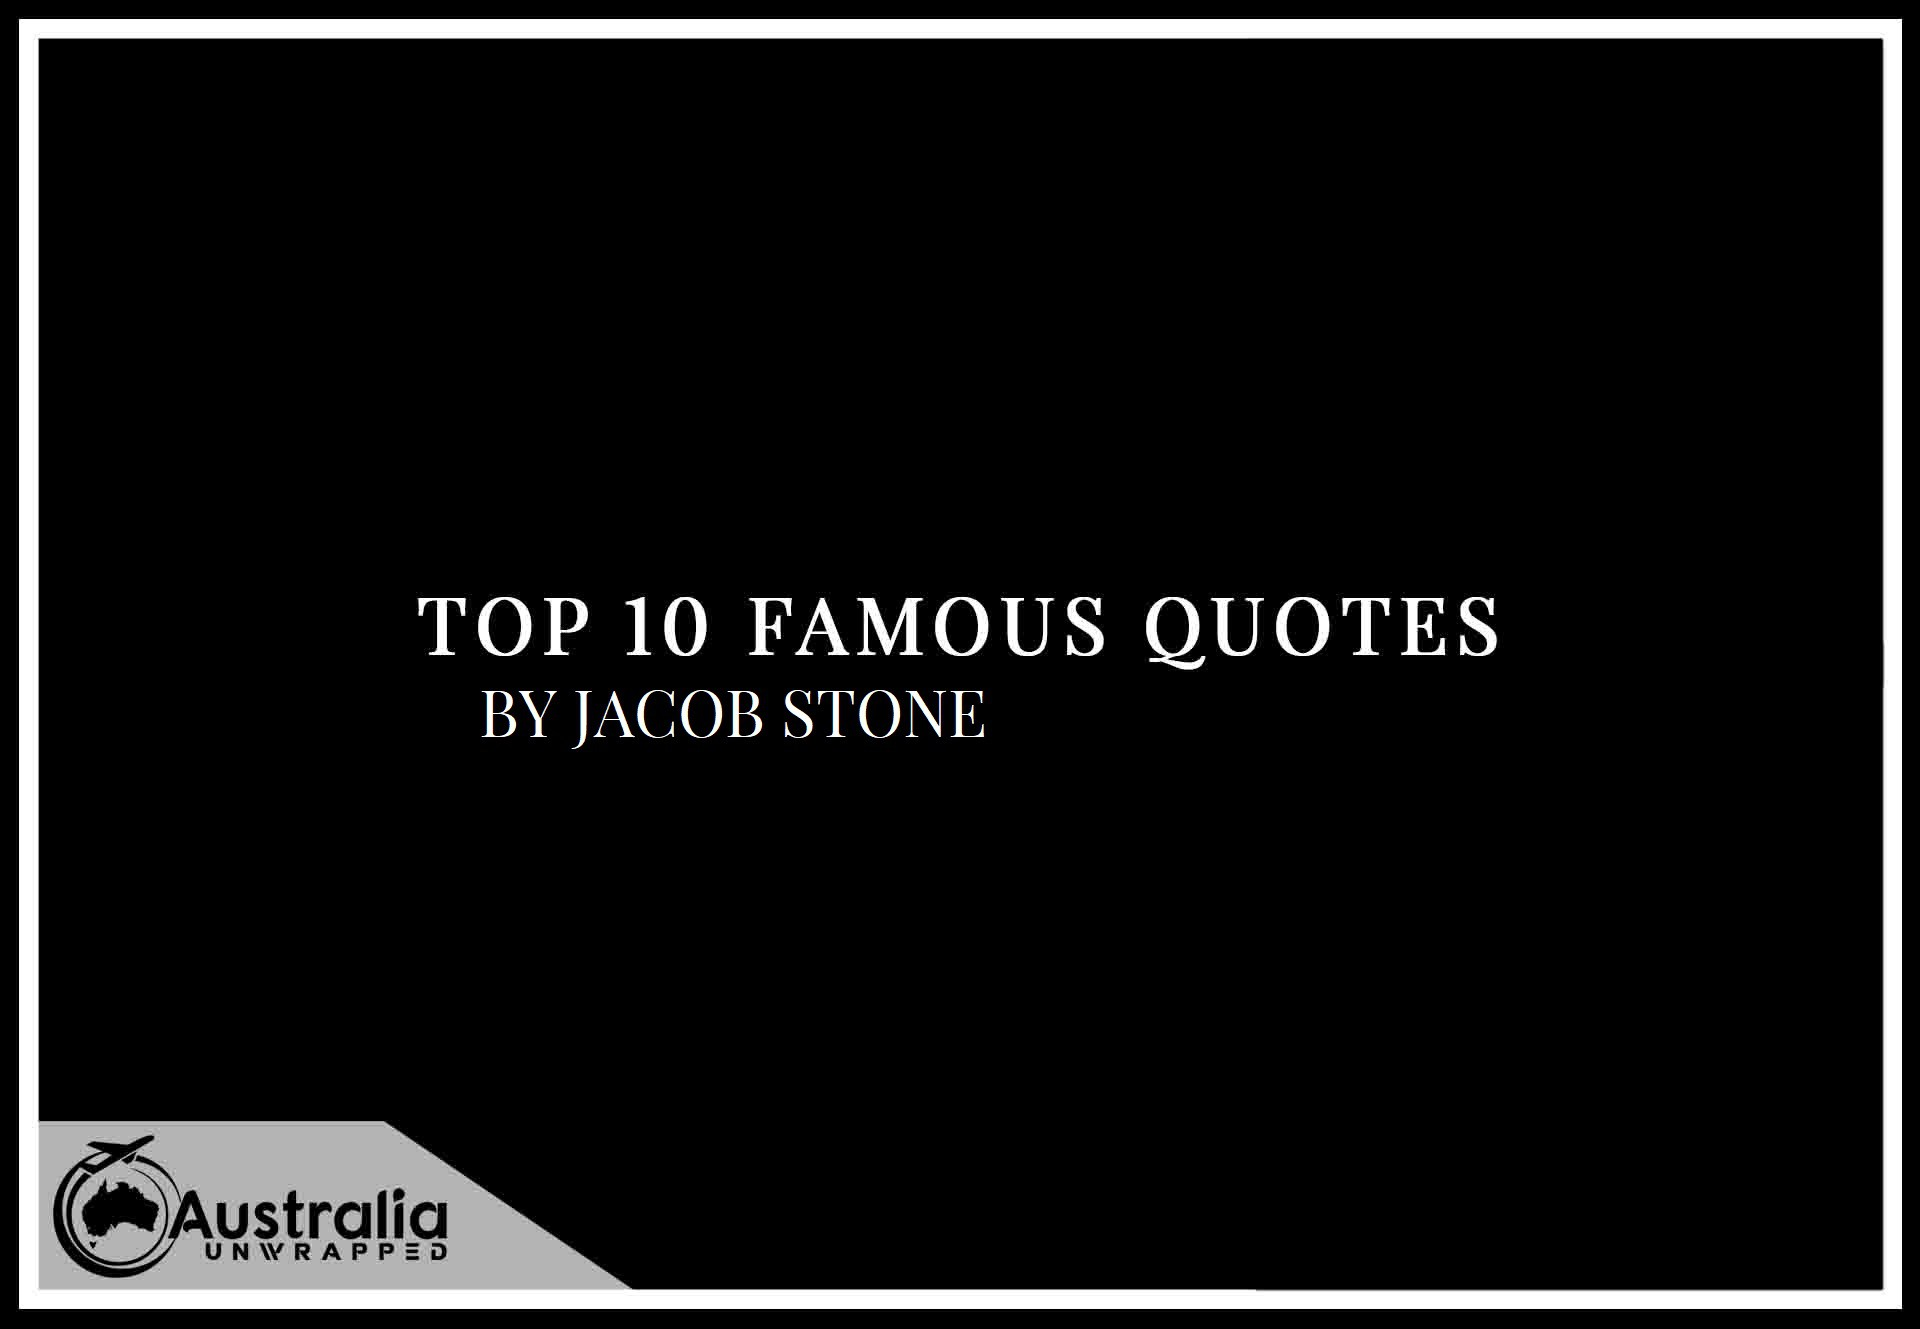 Top 1 Famous Quotes by Author Jacob Stone